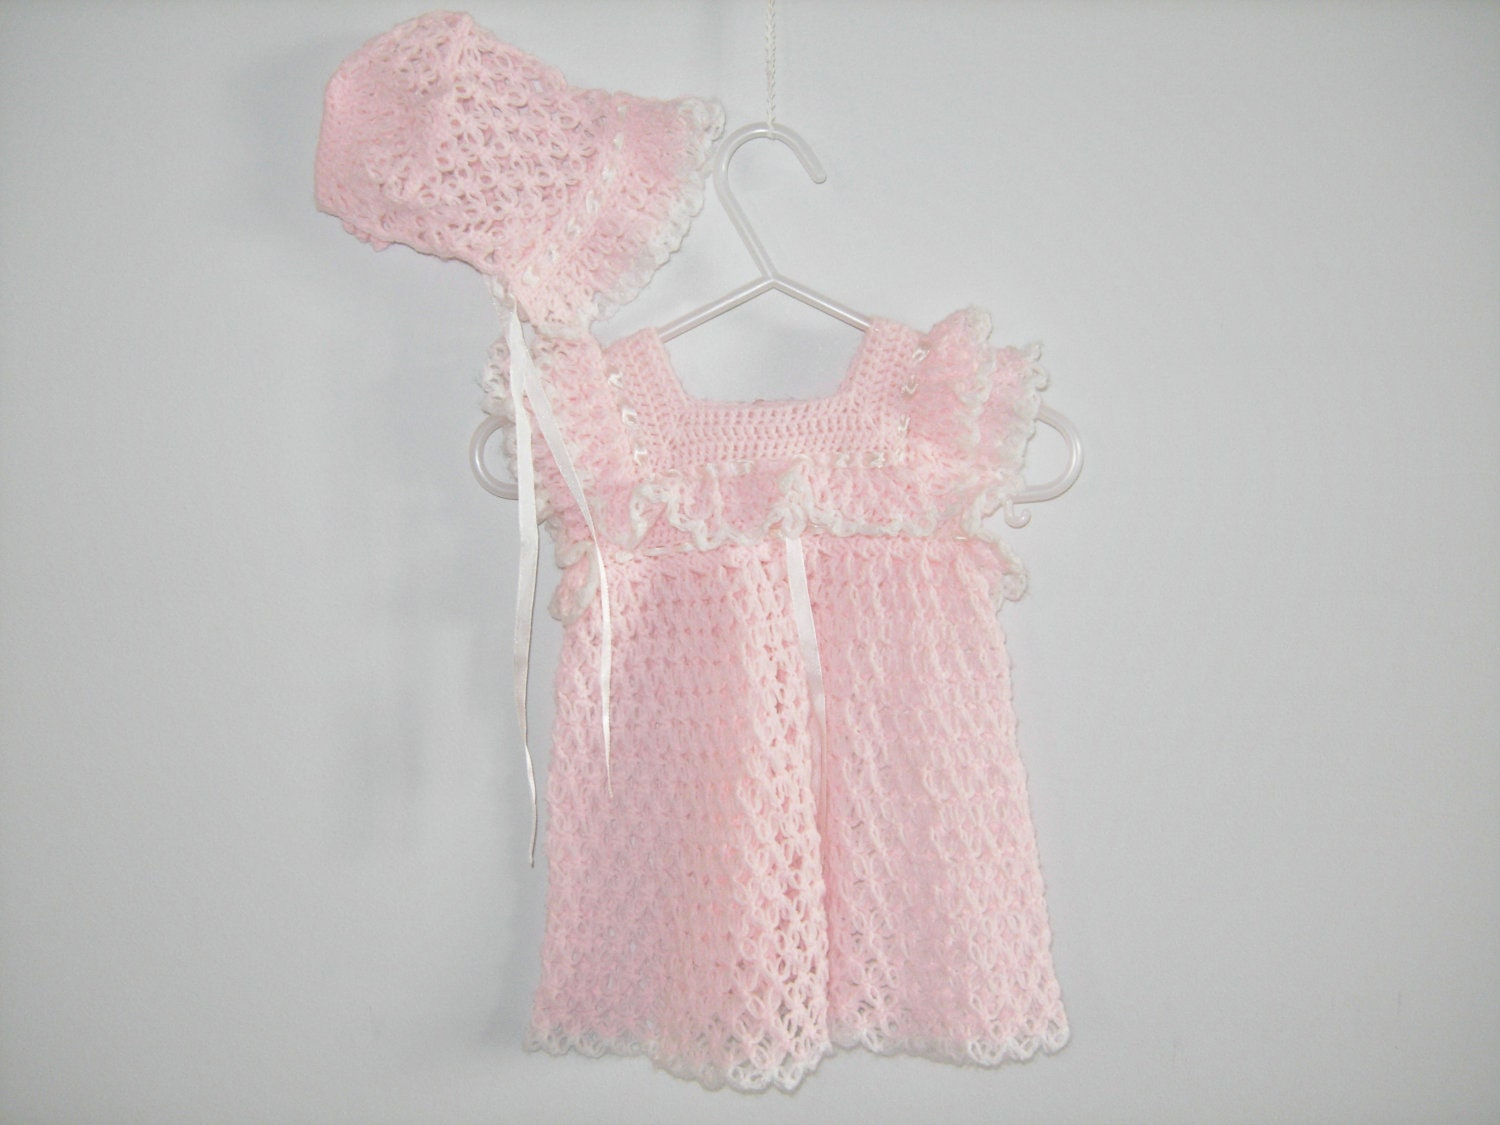 Delicate Pink Knit Dress and Matching Bonnet - Apearsvintagegoodies